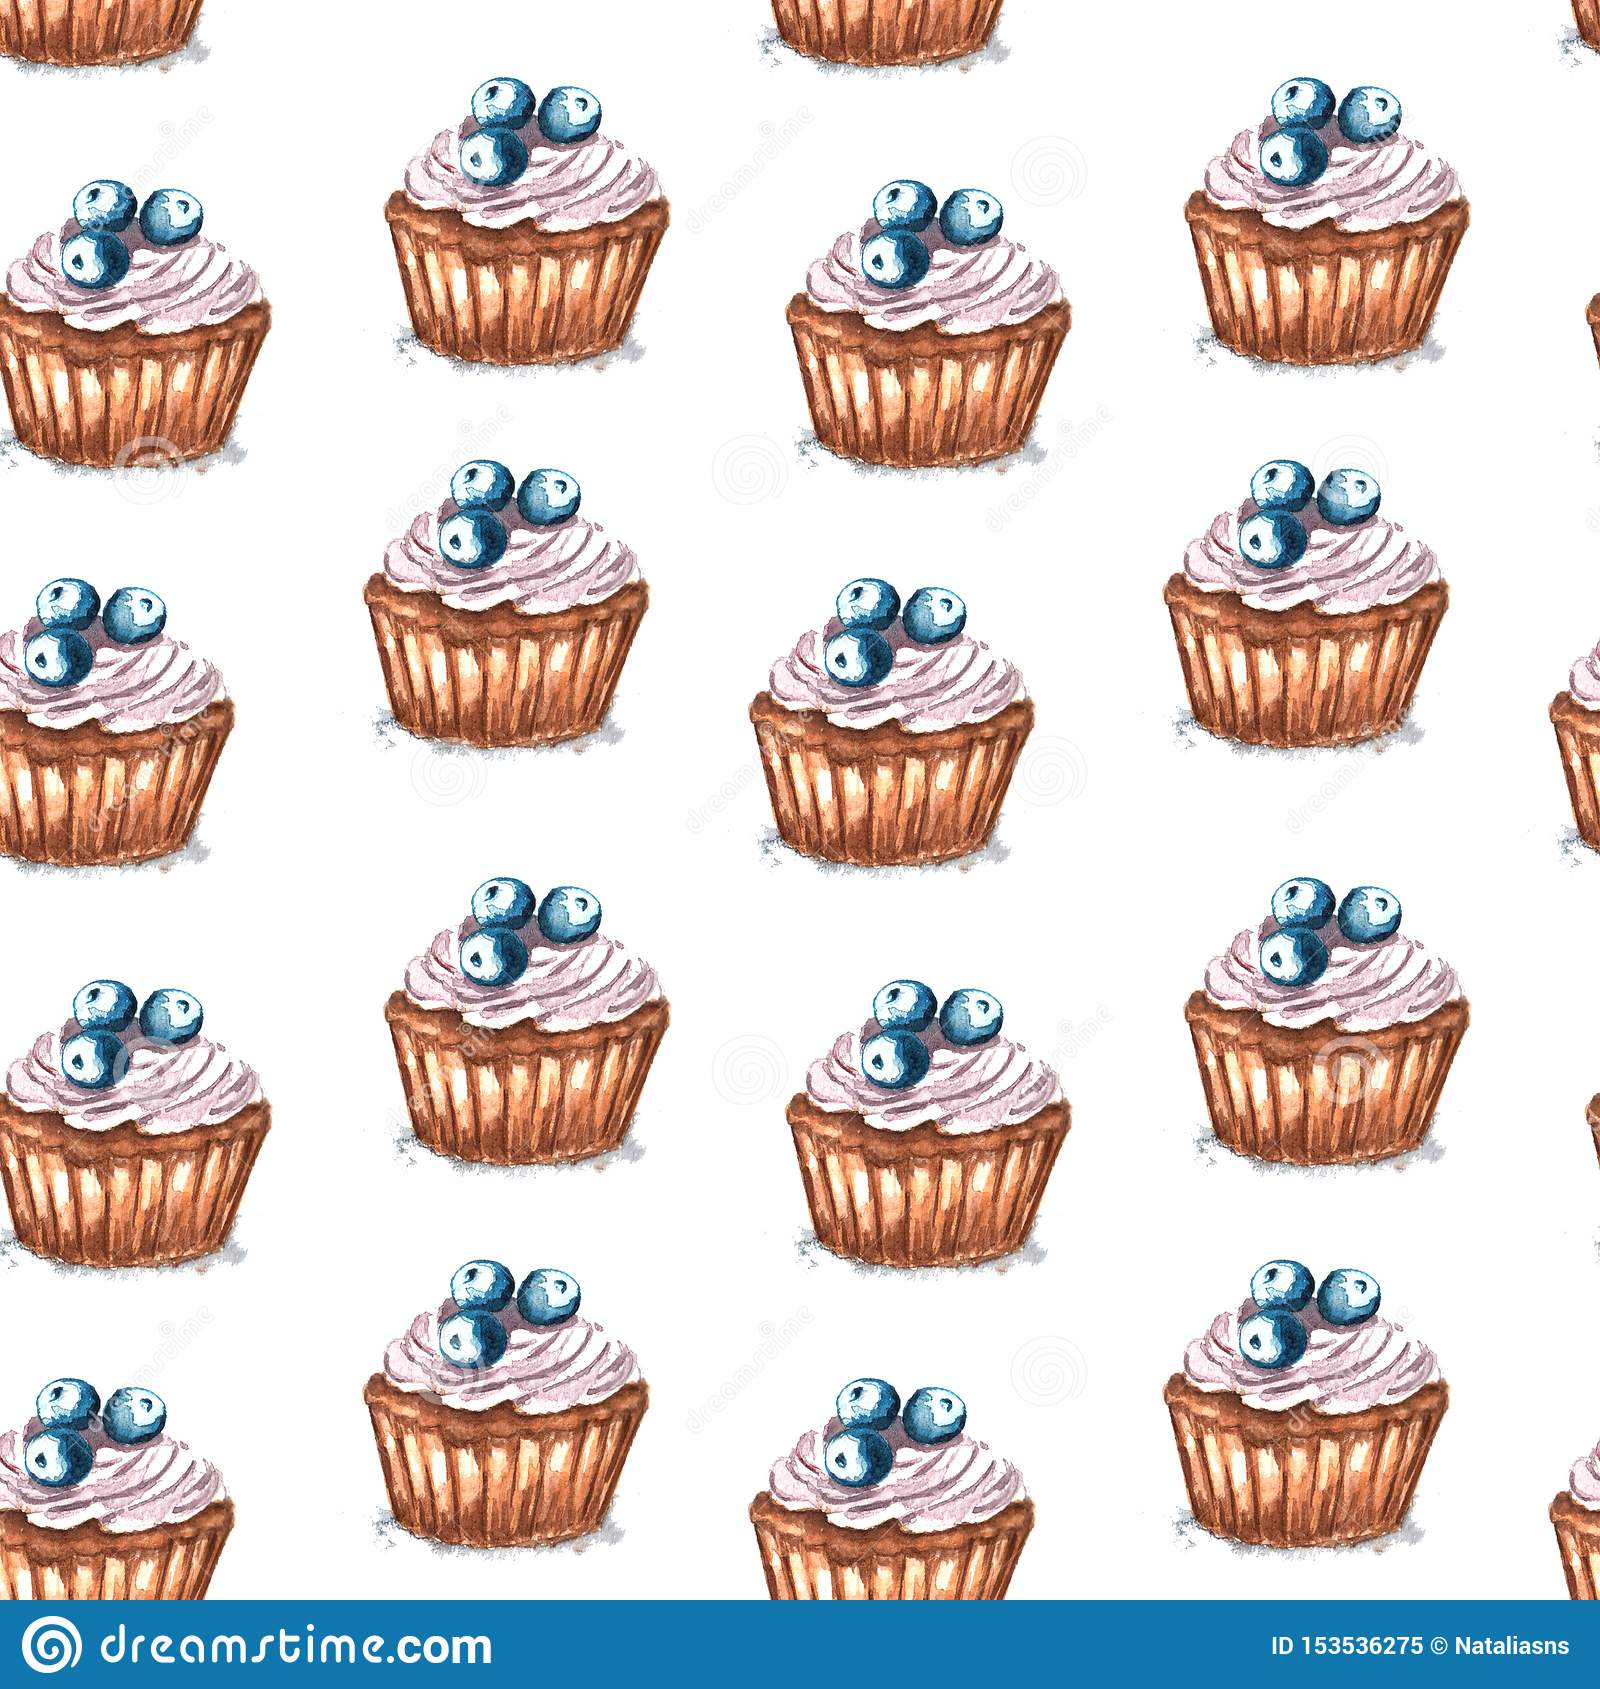 Watercolor illustration of seamless pattern cupcake with blueberry